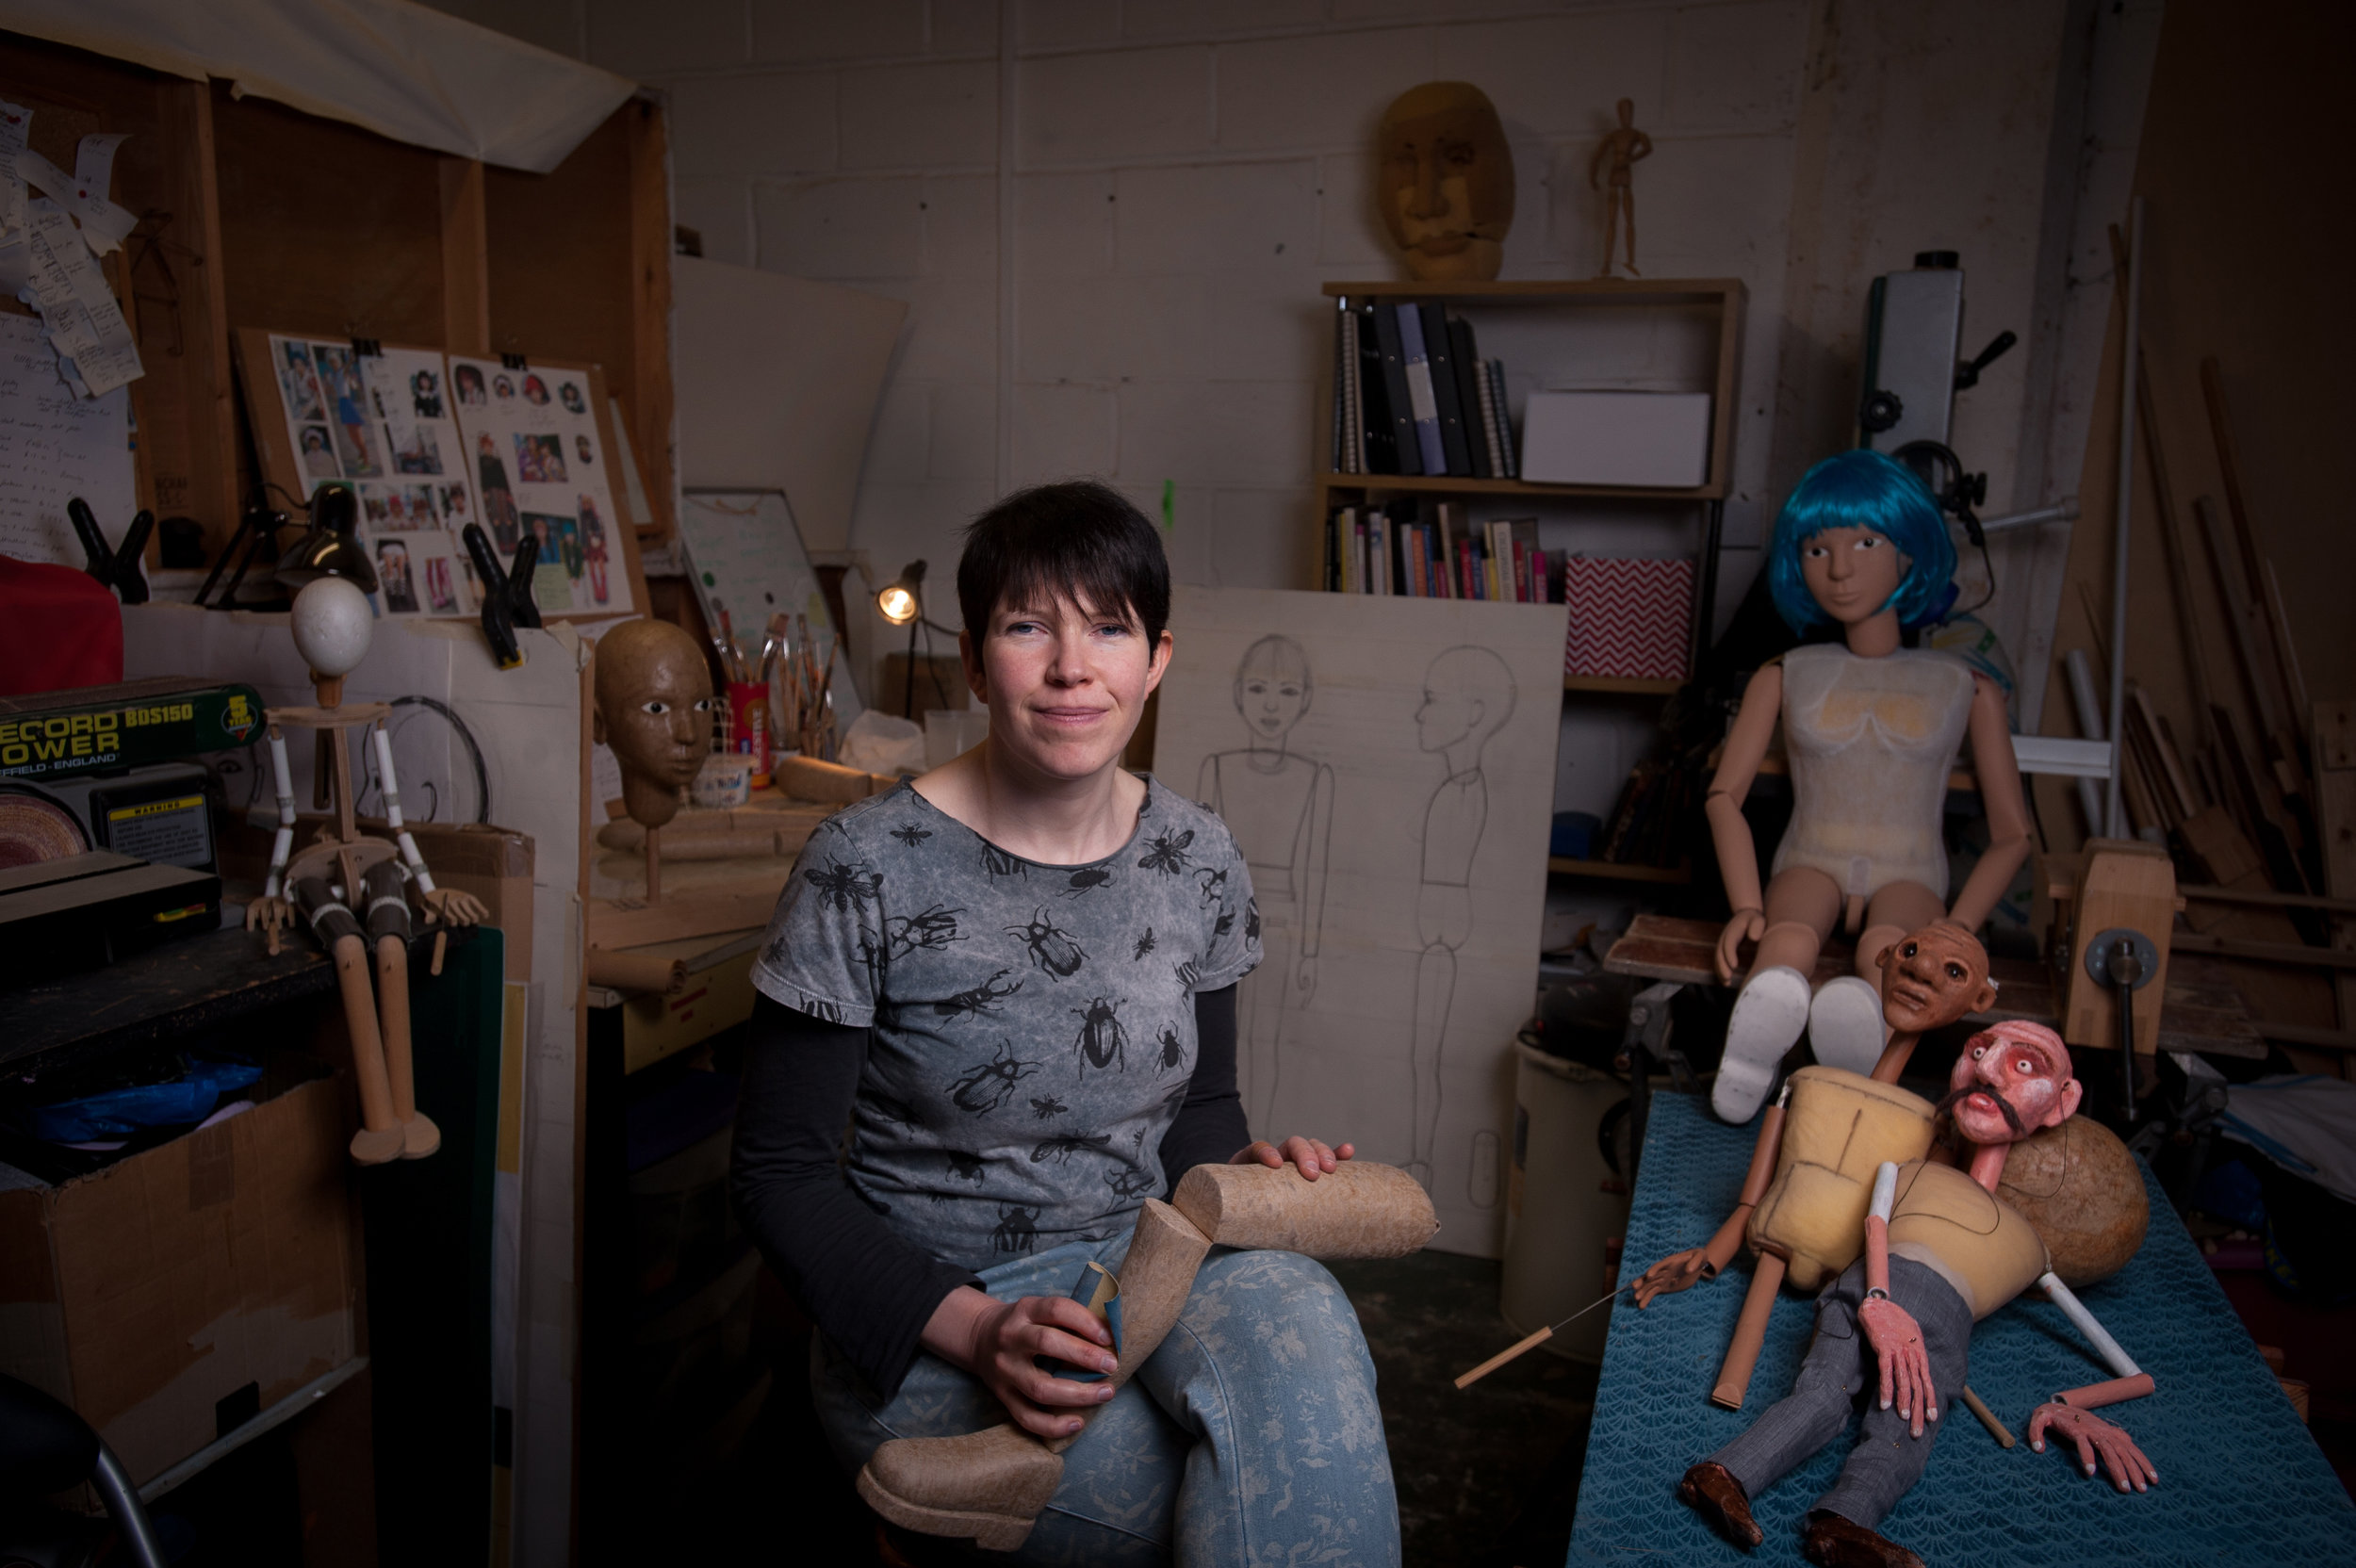 Catherine, The Puppet Maker